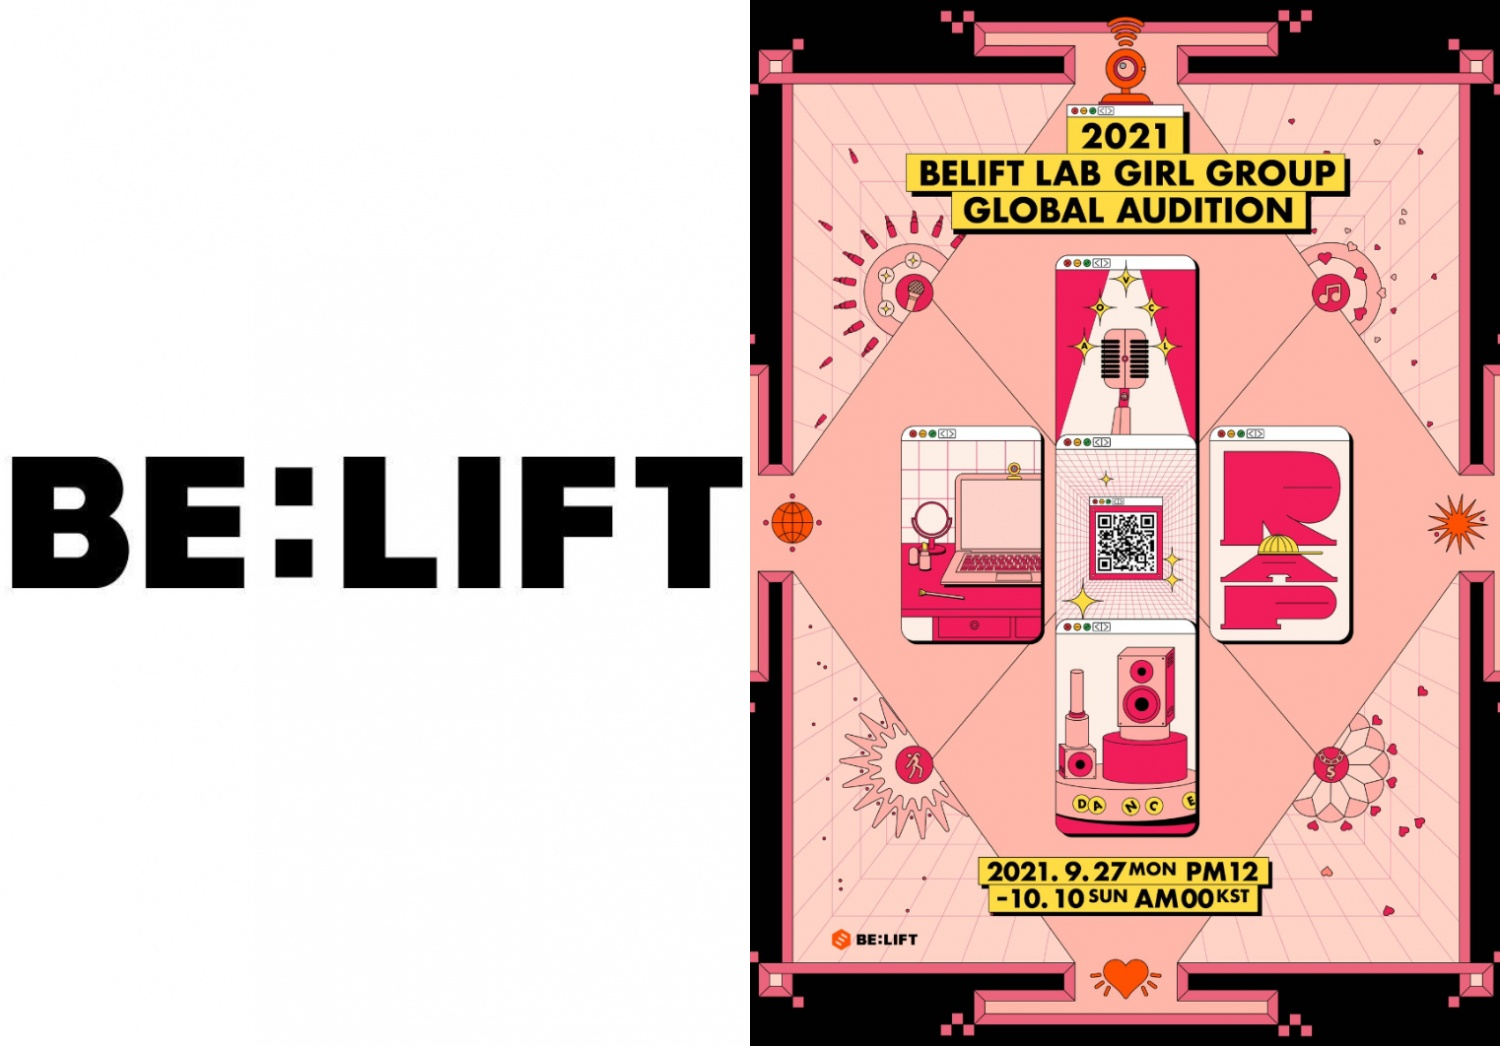 Belift Lab 'I-LAND 2' Records the Highest Number of Applicants among Recent Girl Group Auditions